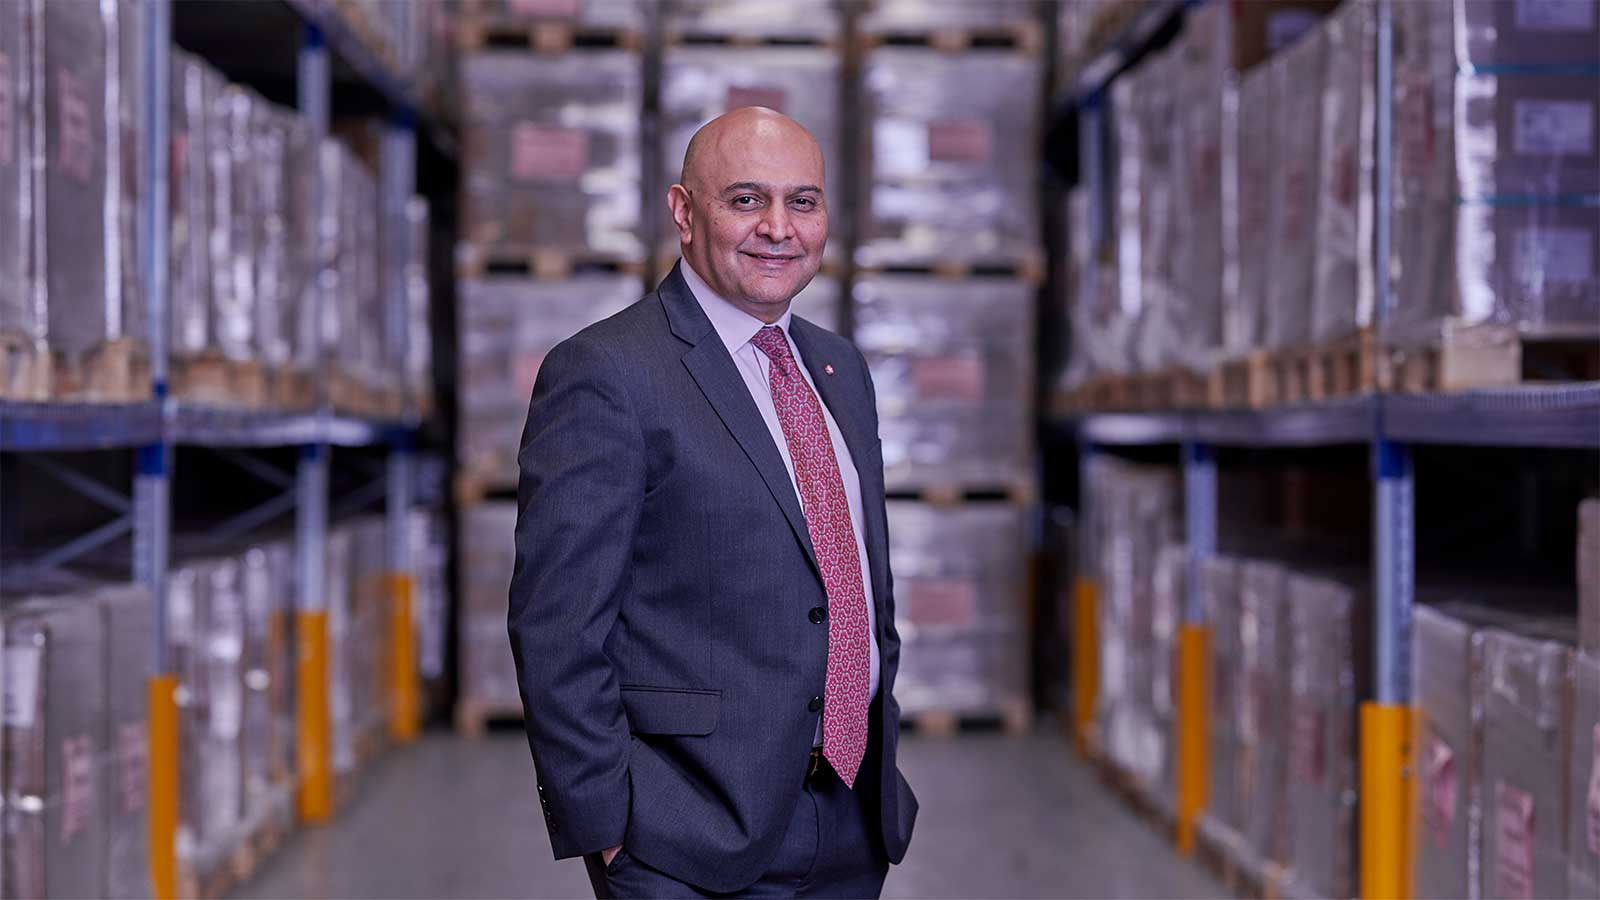 Dr Nik Kotecha OBE, Chief Executive of Morningside Pharmaceuticals Ltd